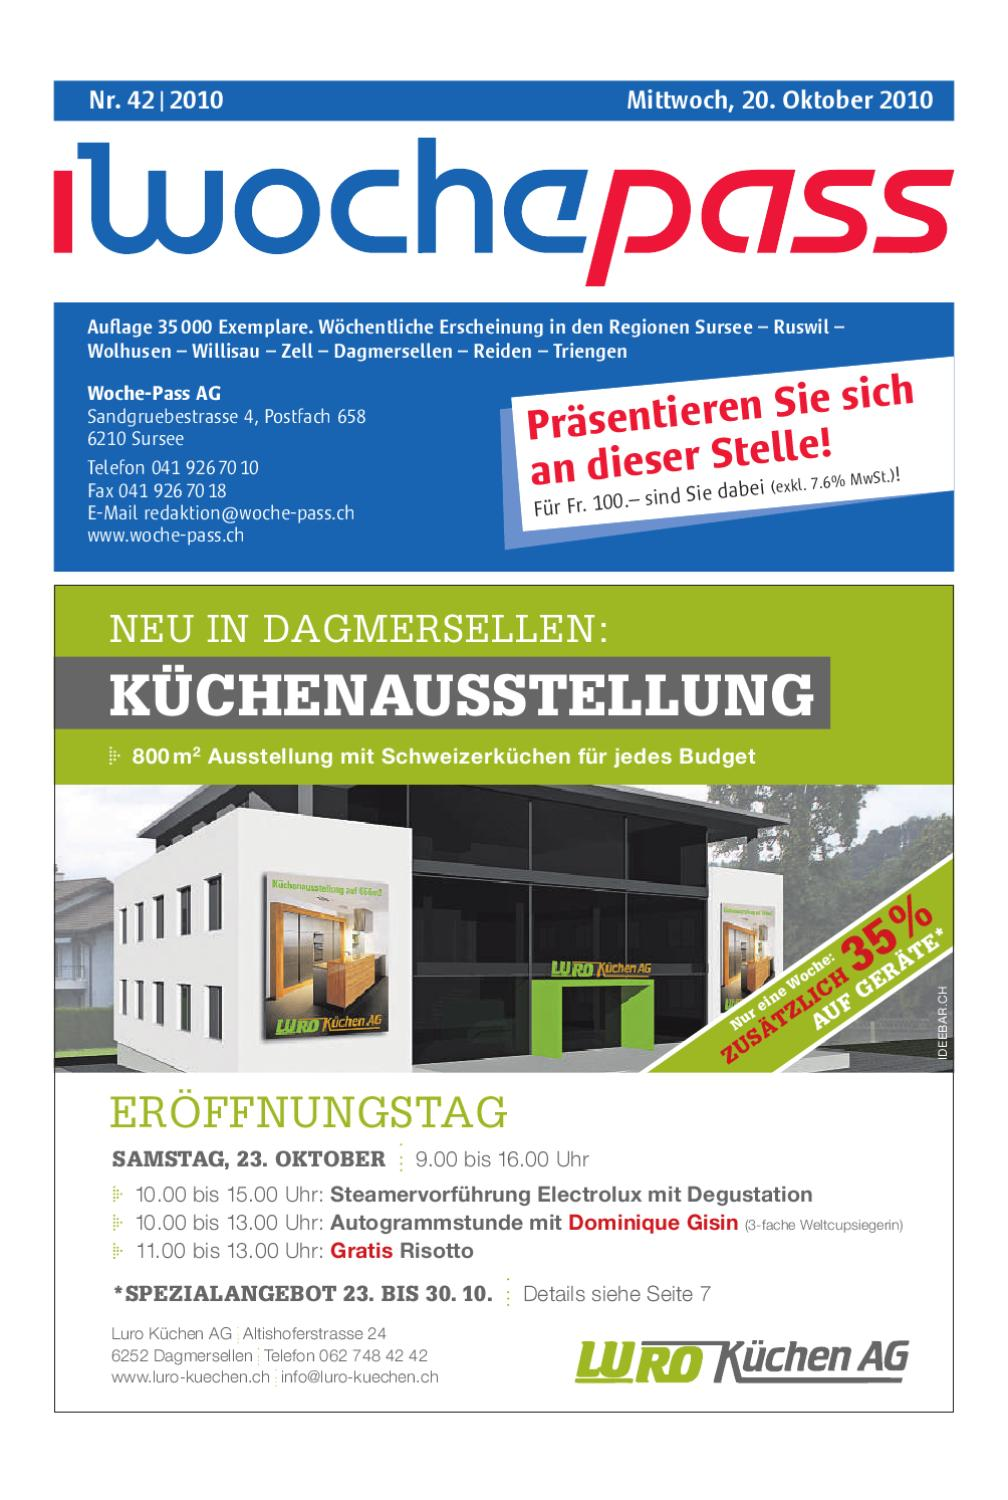 Woche Pass Kw42 20 Oktober 2010 By Woche Pass Ag Issuu